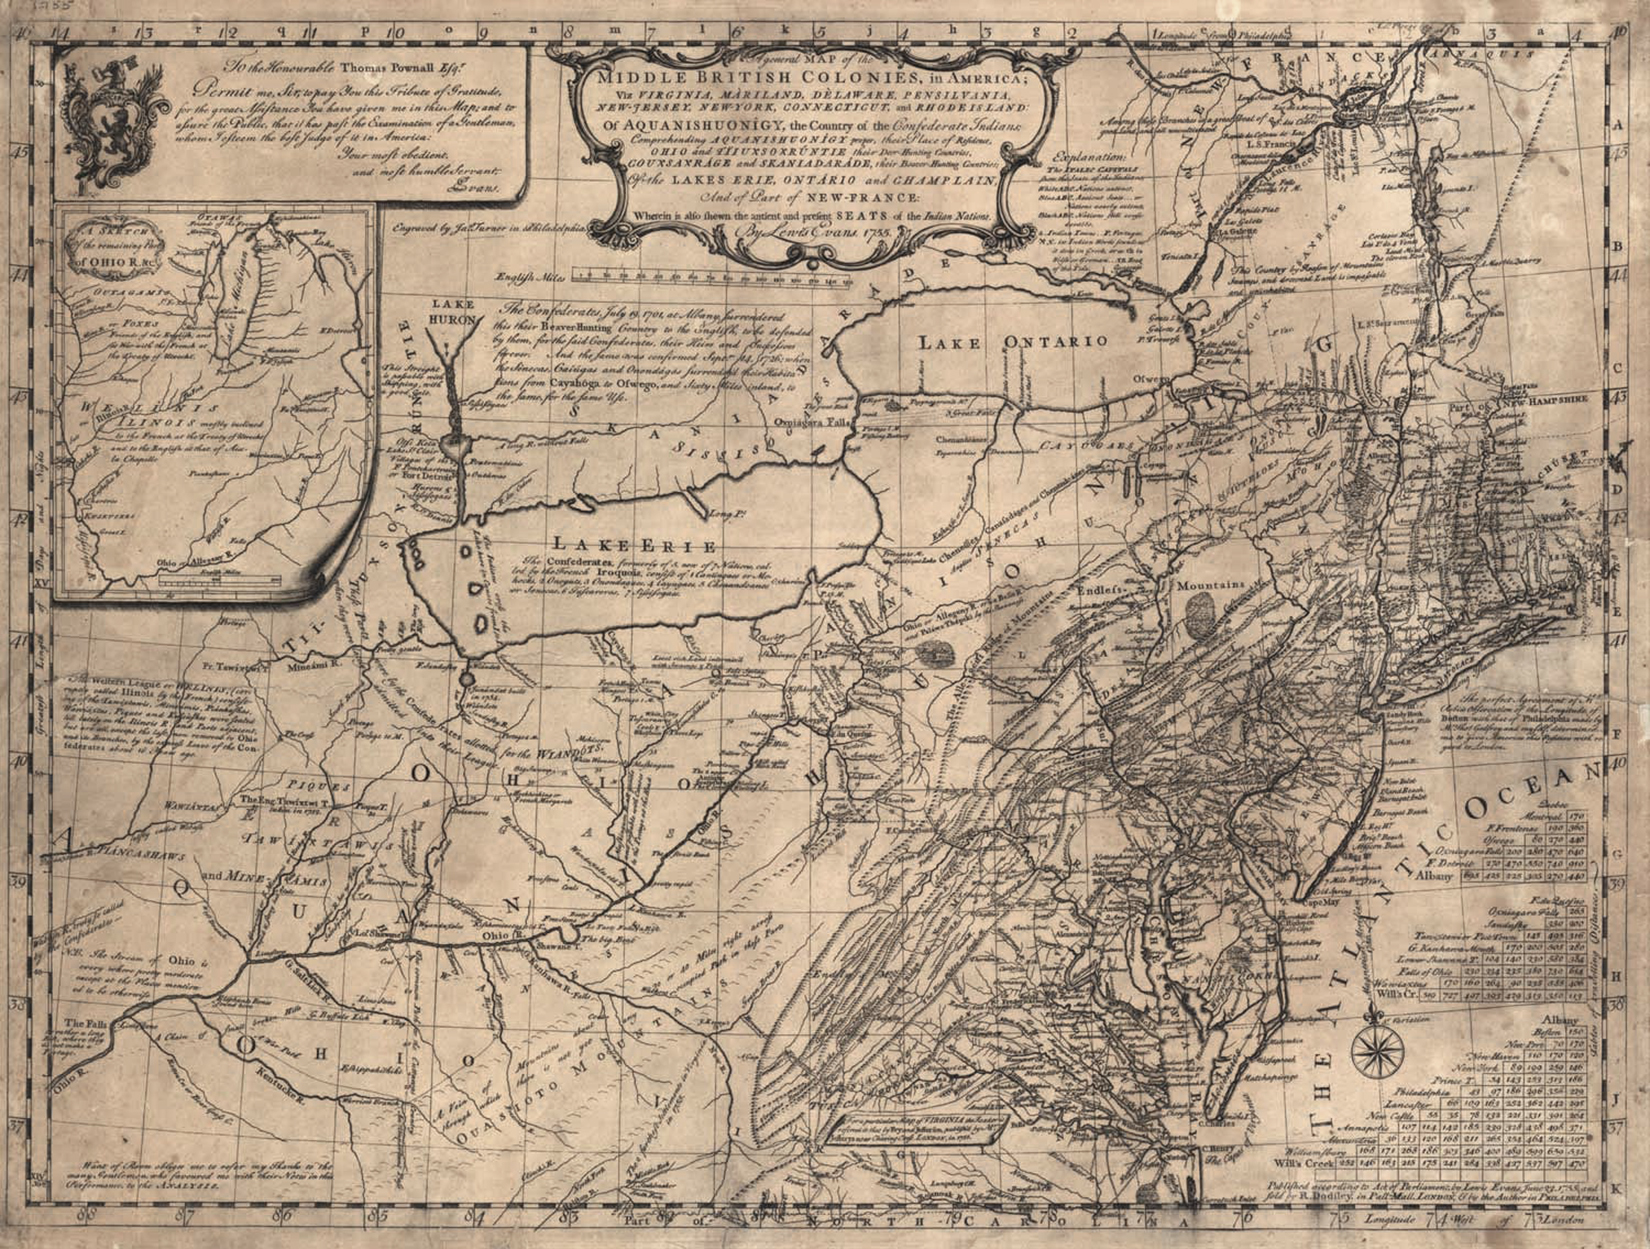 Fig 3 A General Map Of The Middle British Colonies In America